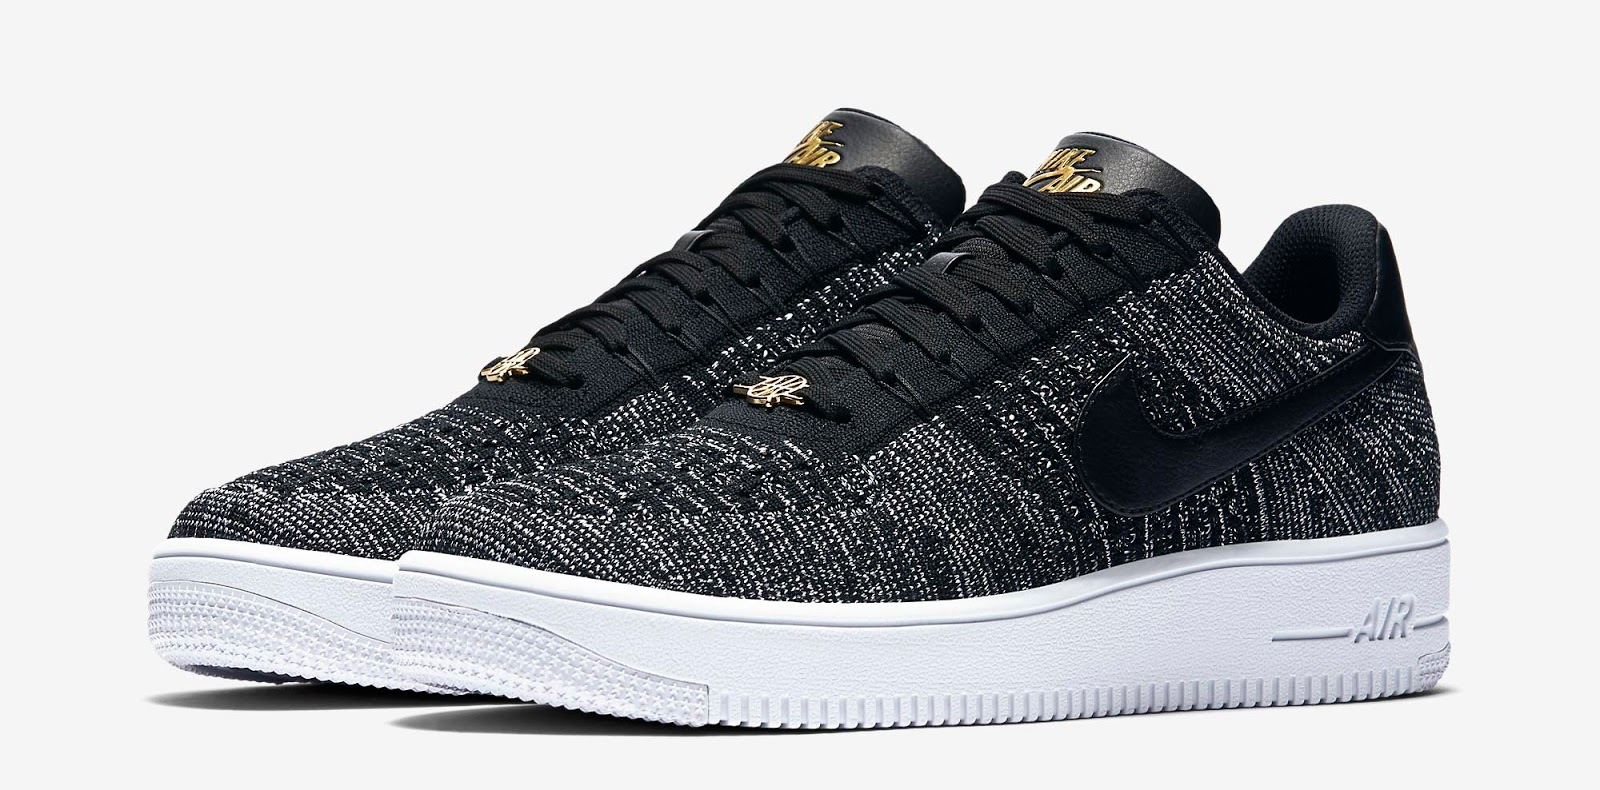 nike air force 1 black flyknit jordan